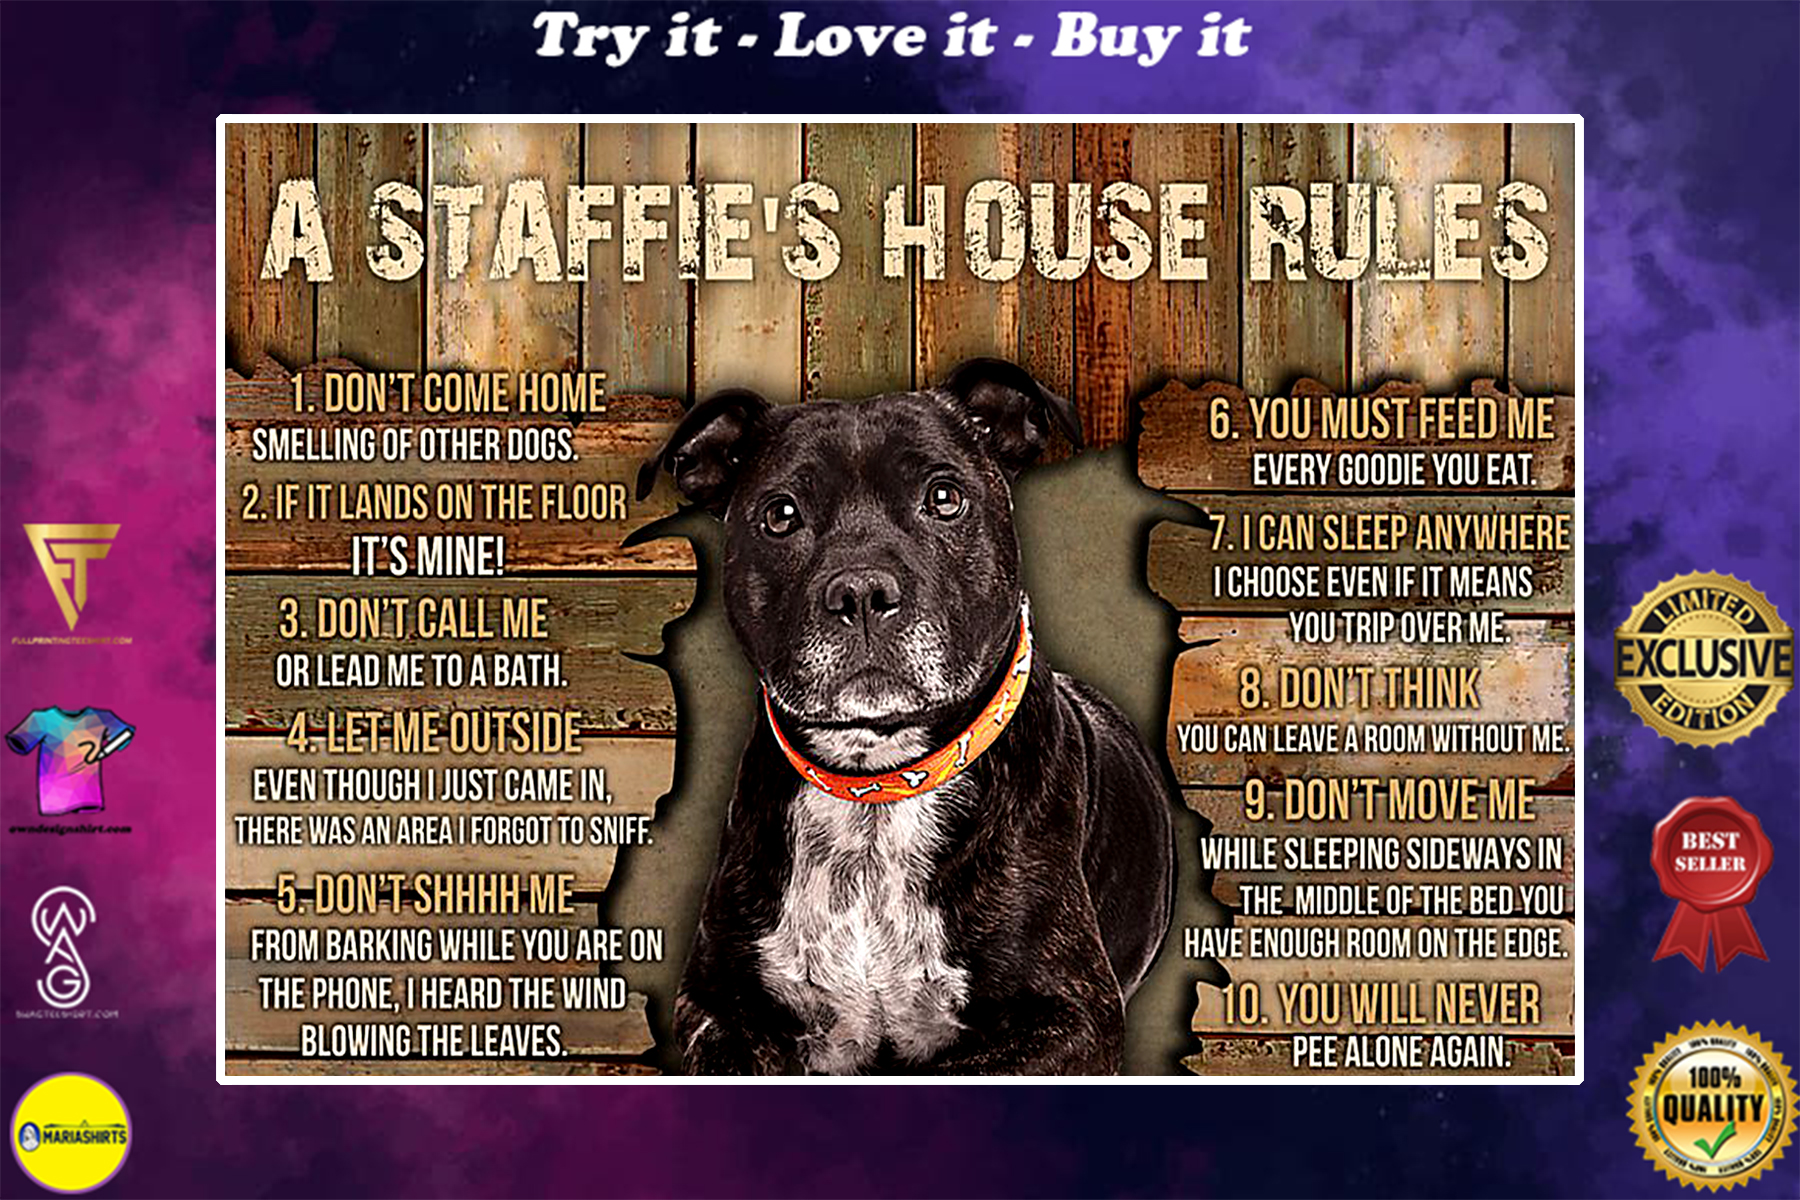 dog lover a staffies house rules poster